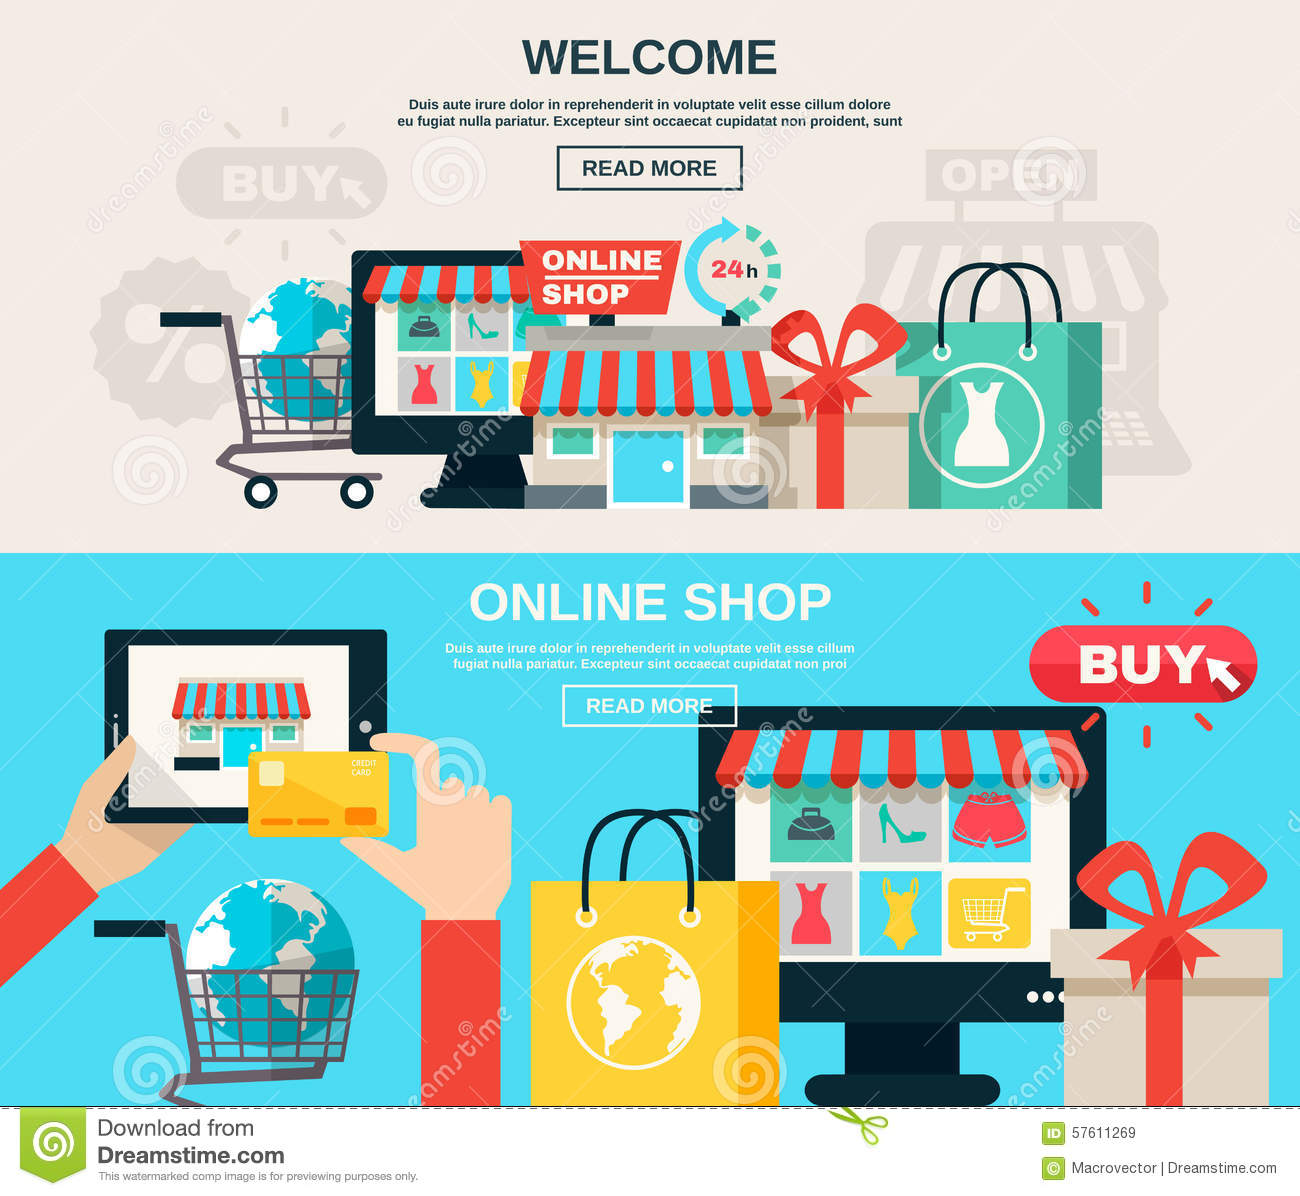 internet-store-flat-banner-set-welcome-online-shop-web-market-buy-online-color-horizontal-vector-illustration-57611269.jpg